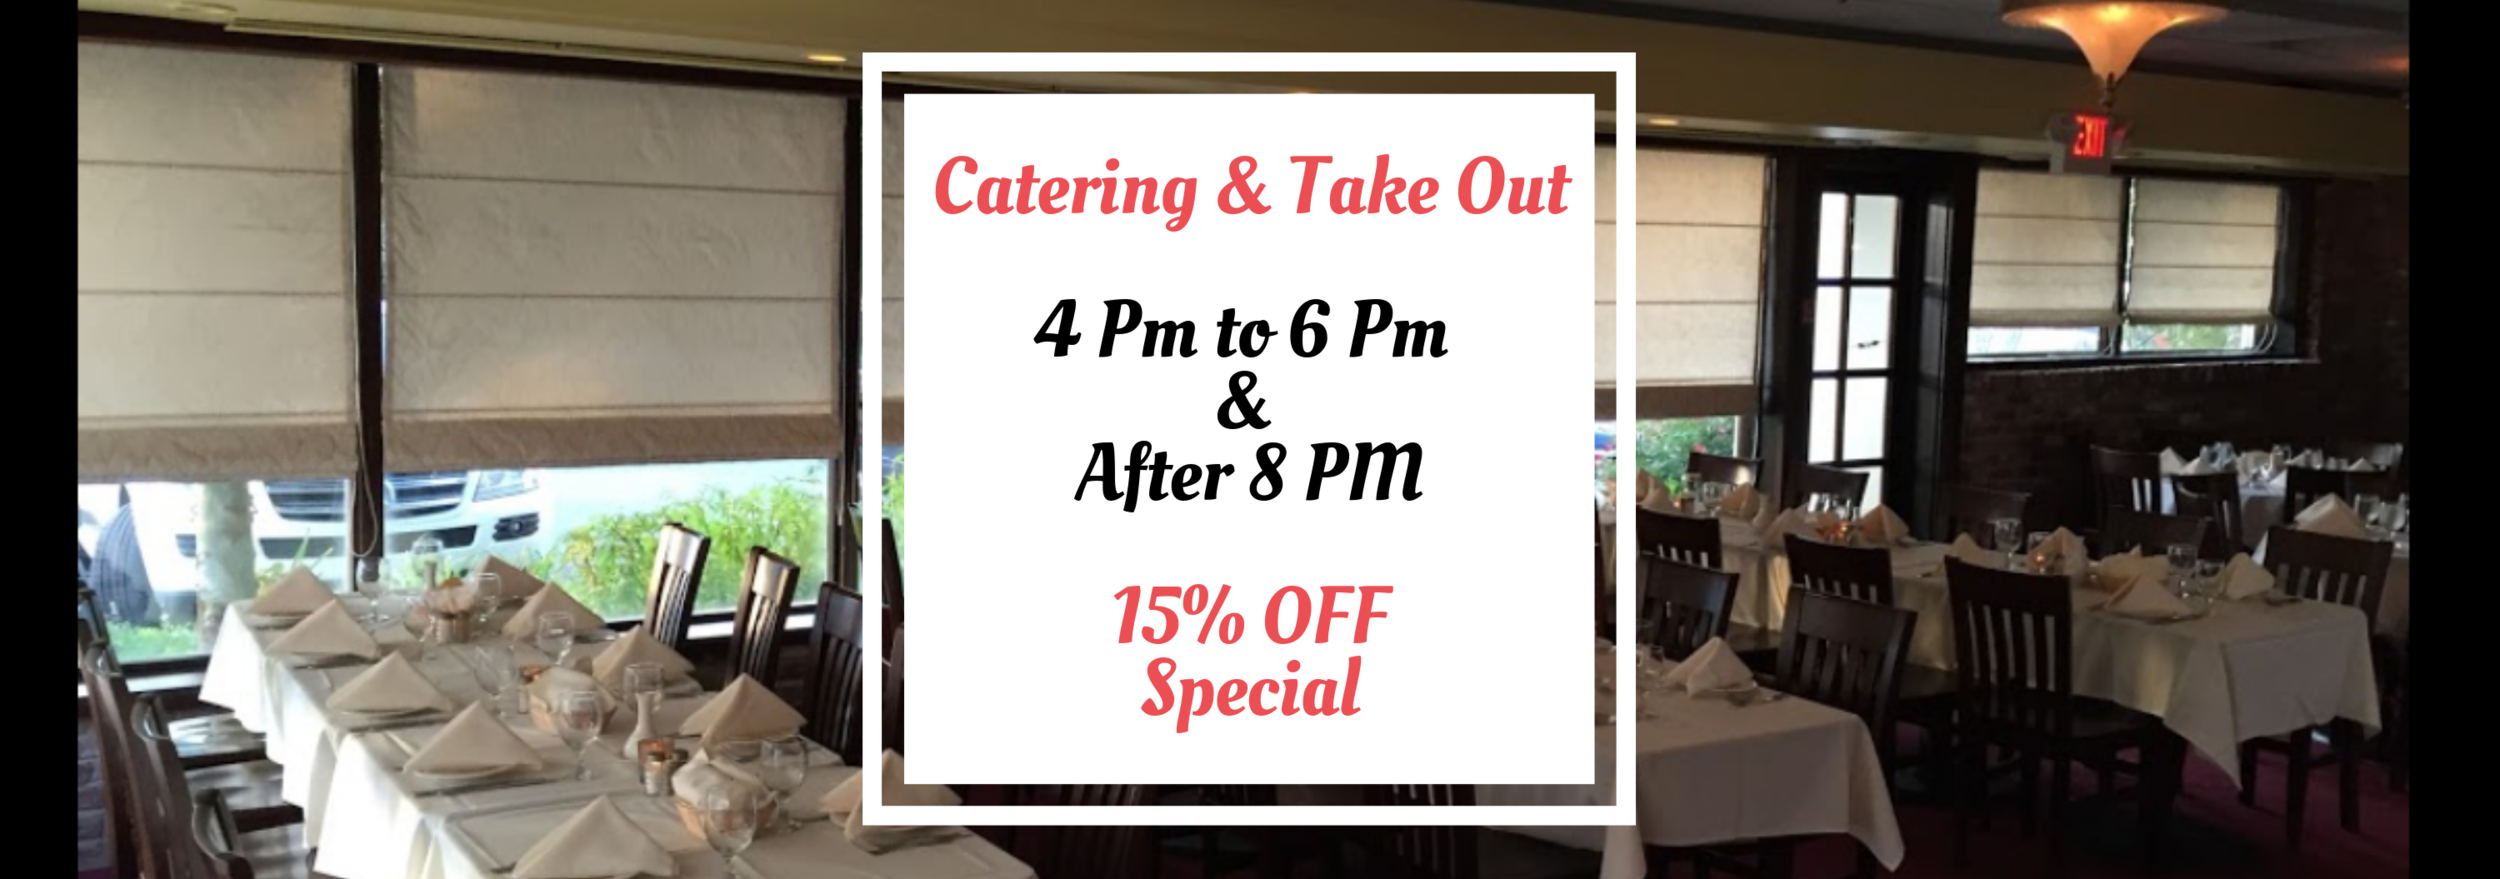 la Vecchia Fontana TAKE OUT 4PM TO 6PM & AFTER 8_30 PM 20% OFF SPECIAL - EXCLUDES FRIDAY (1).png